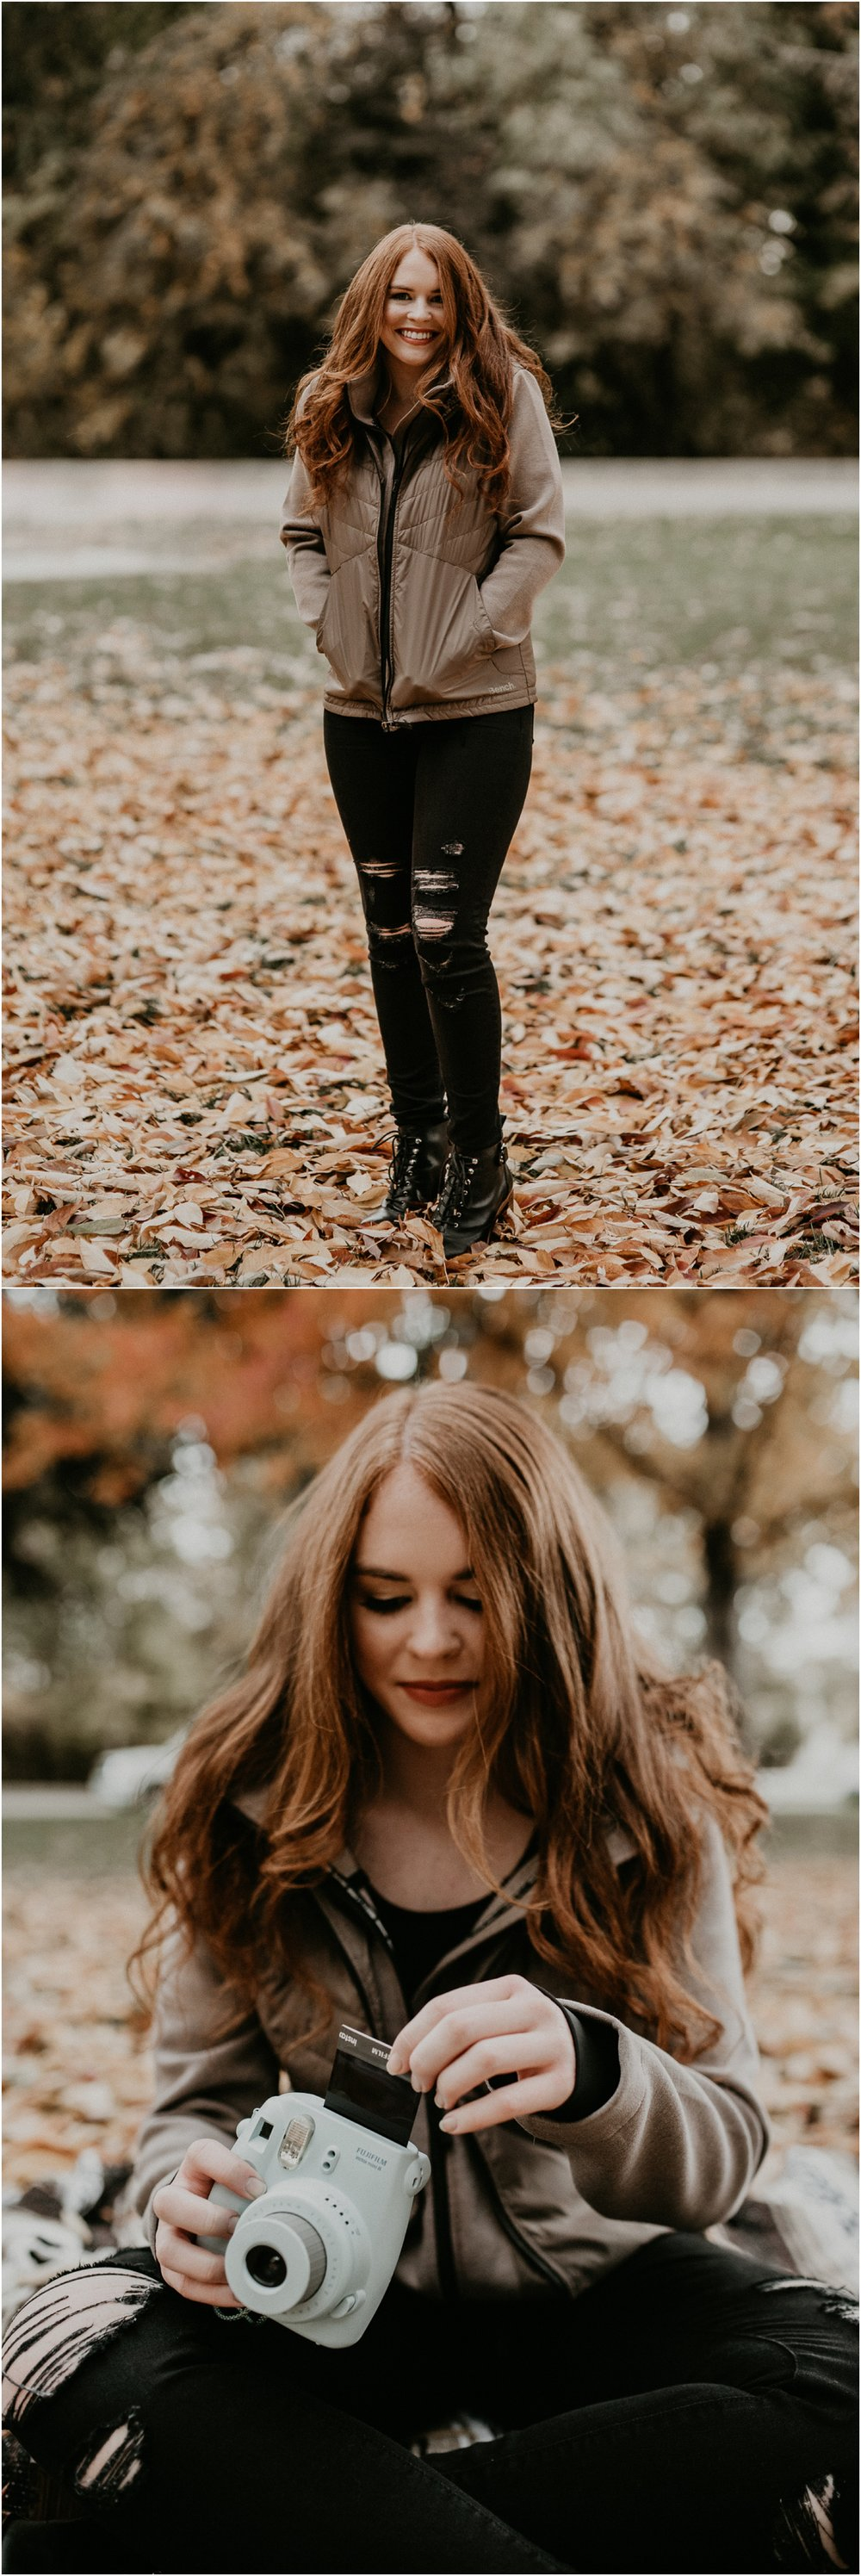 Boise Senior Photographer Makayla Madden Photography Eagle High Senior Harlee Edwards Red Head Fall Downtown Boise Senior Pics Meridian Senior Photographer Polaroids